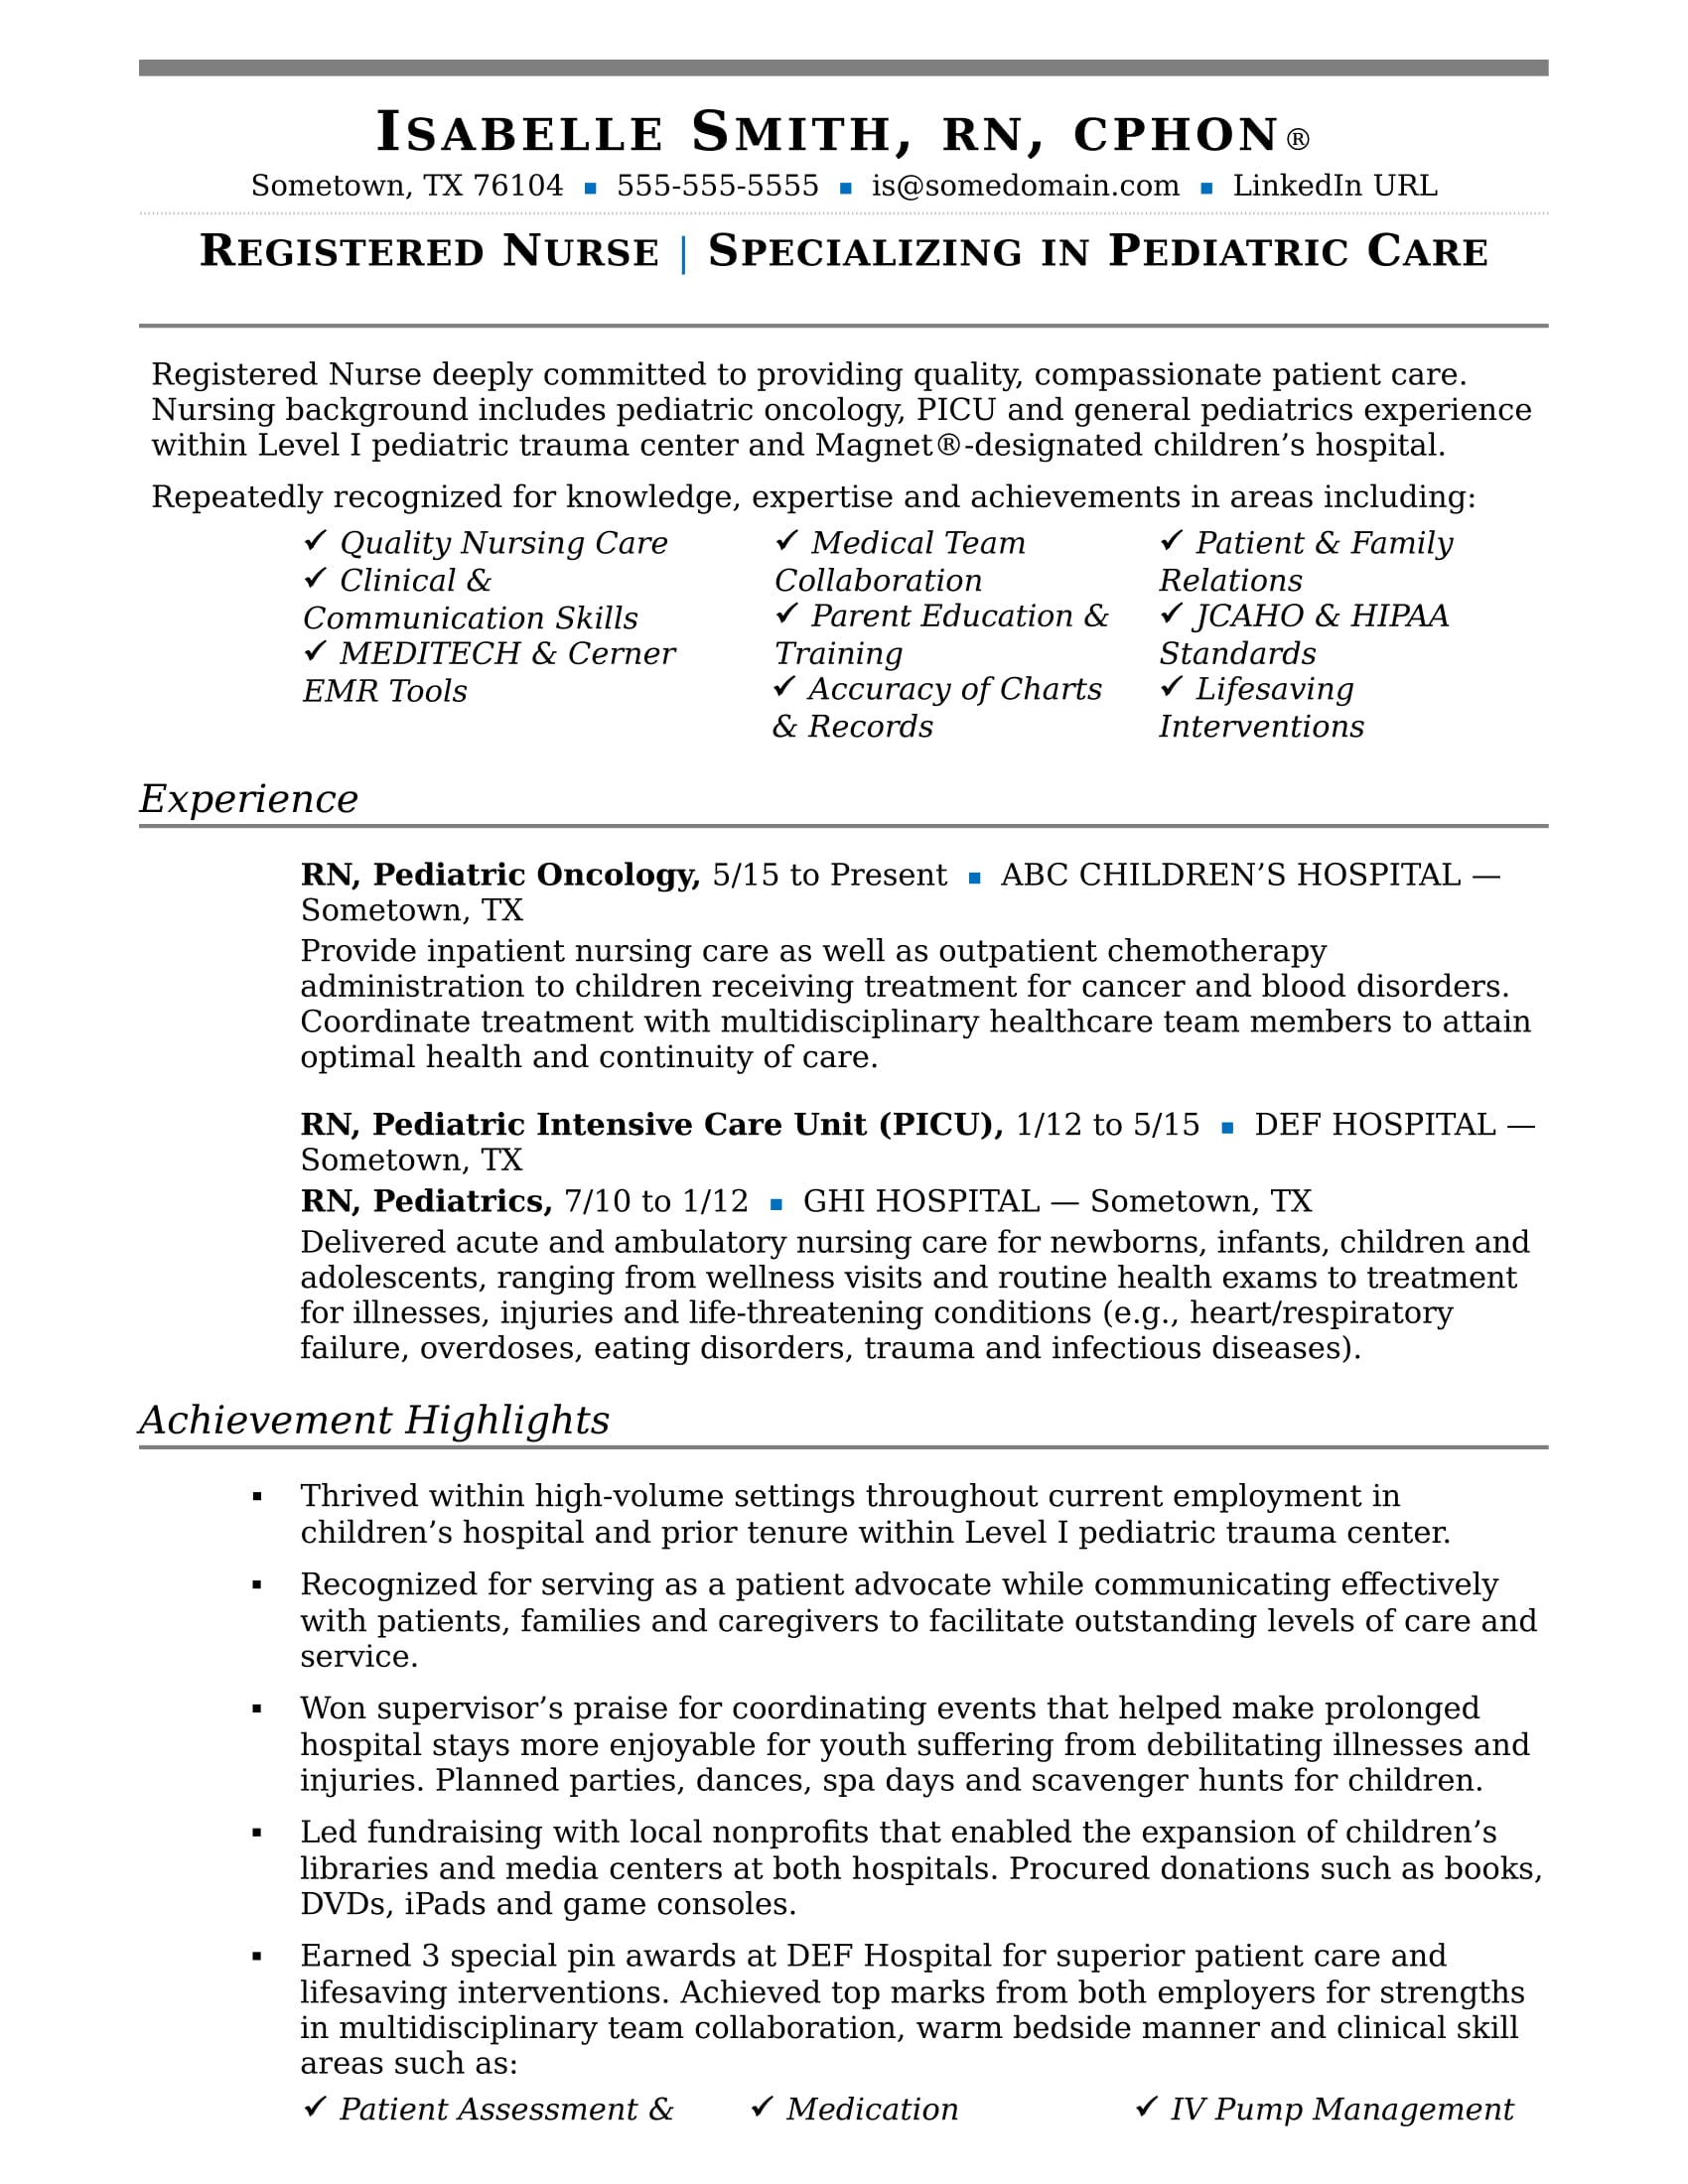 Nurse Resume Sample | Monster.com